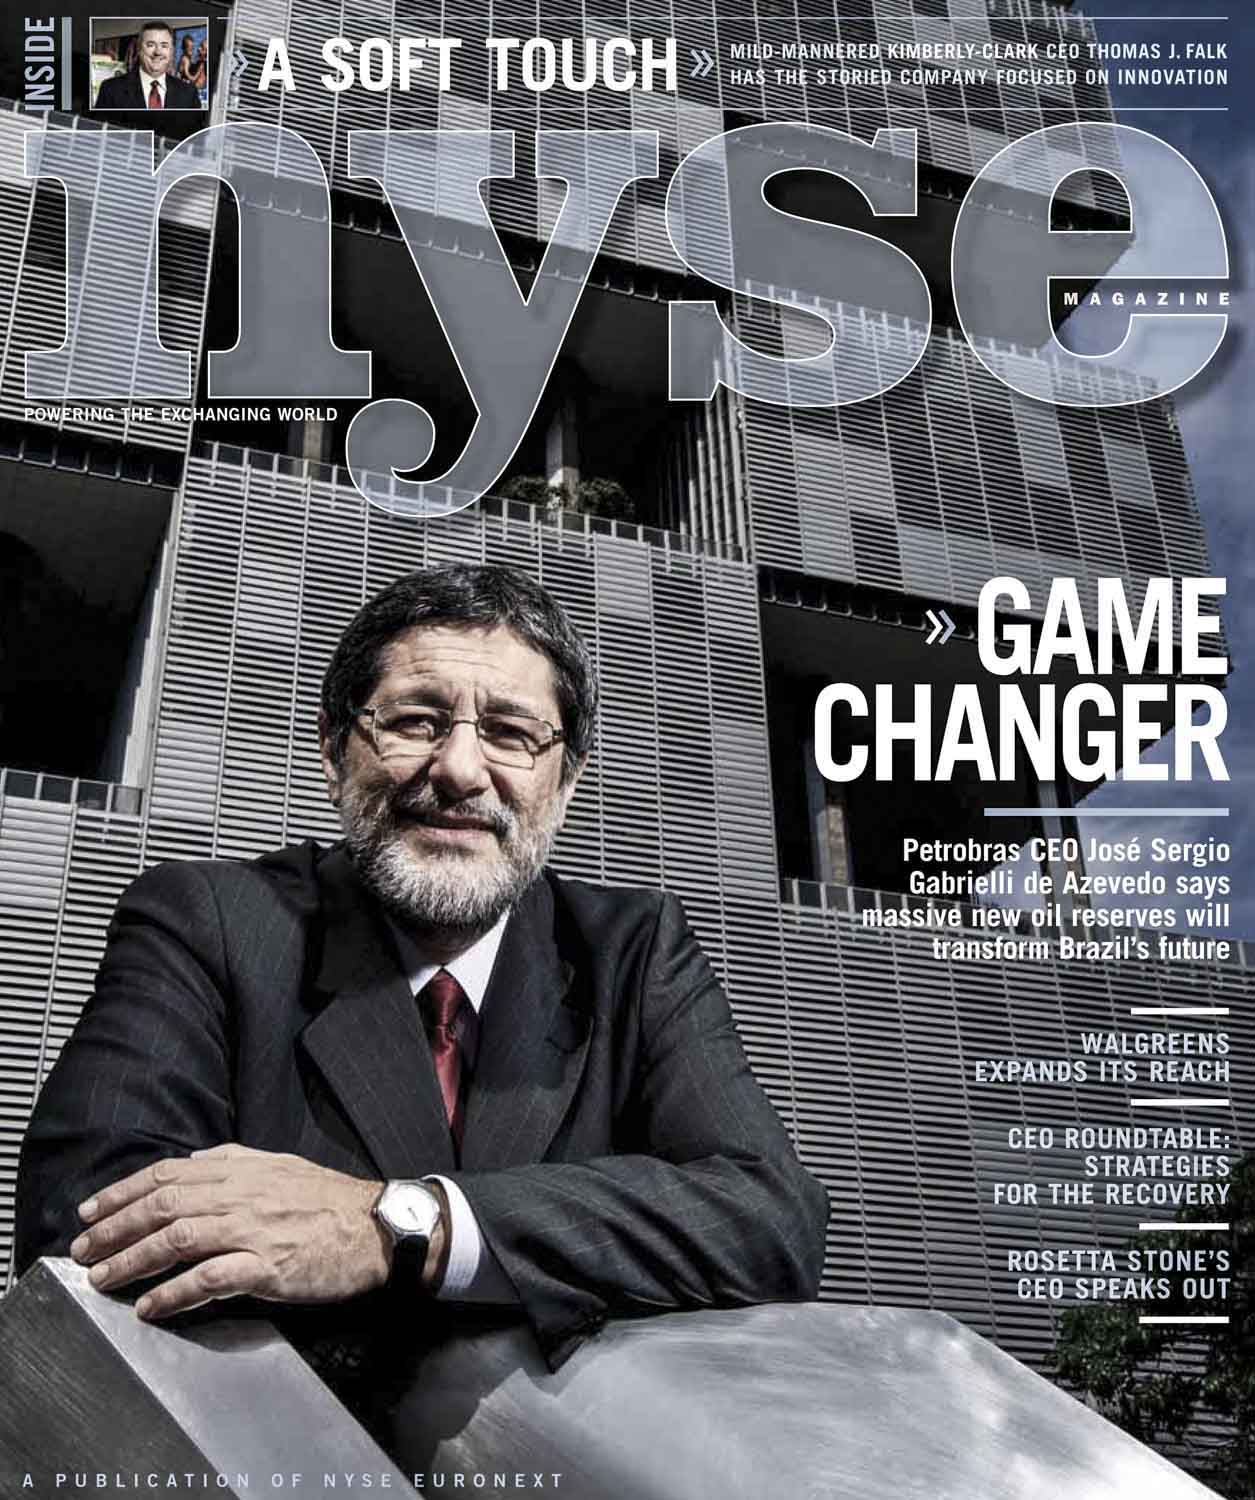 Revista New York Stock Exchange, presidente da Petrobras, José Sergio Gabrielli.